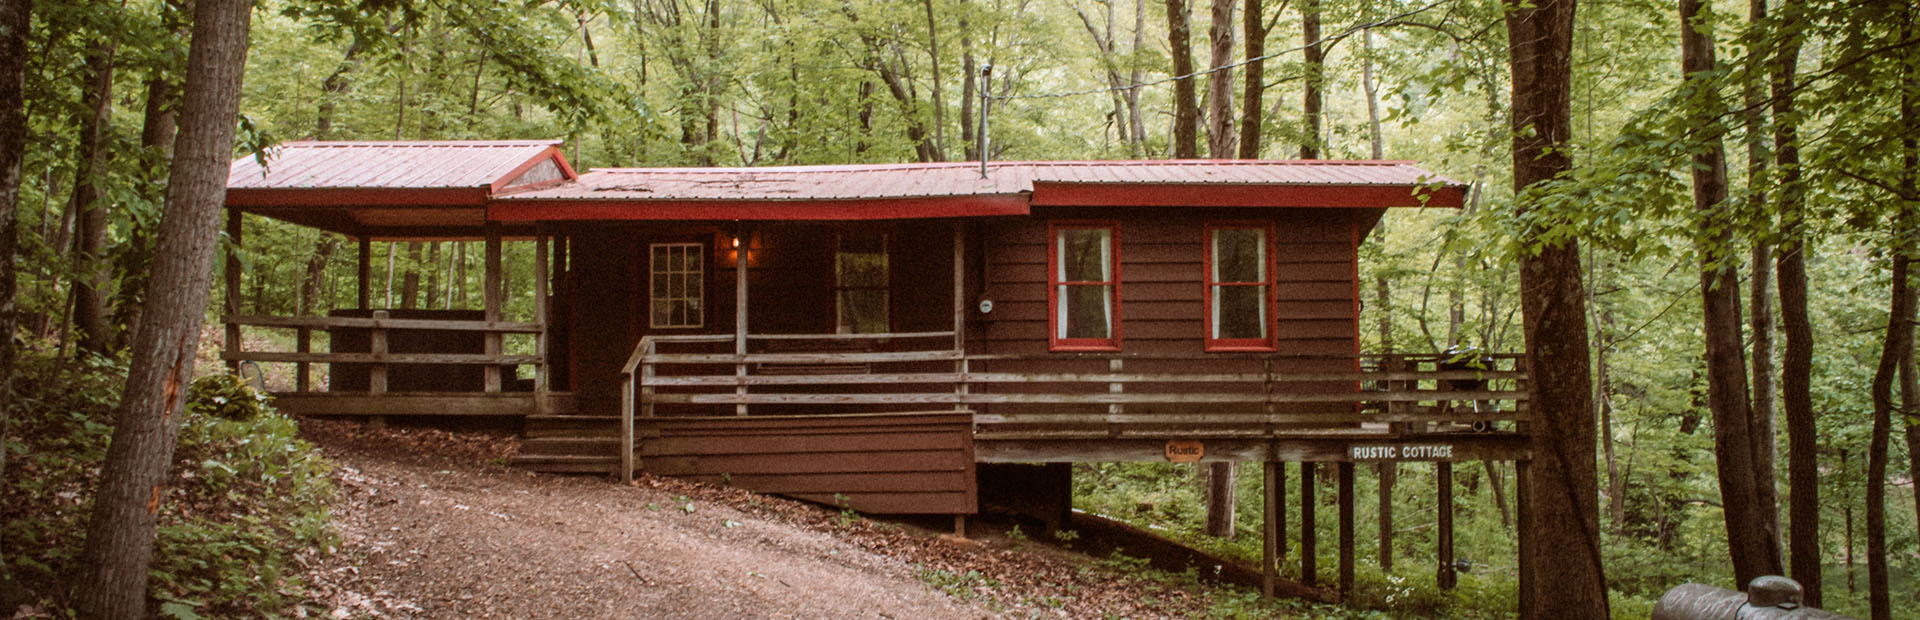 Rustic Cabin Rental at Wyandot Woods